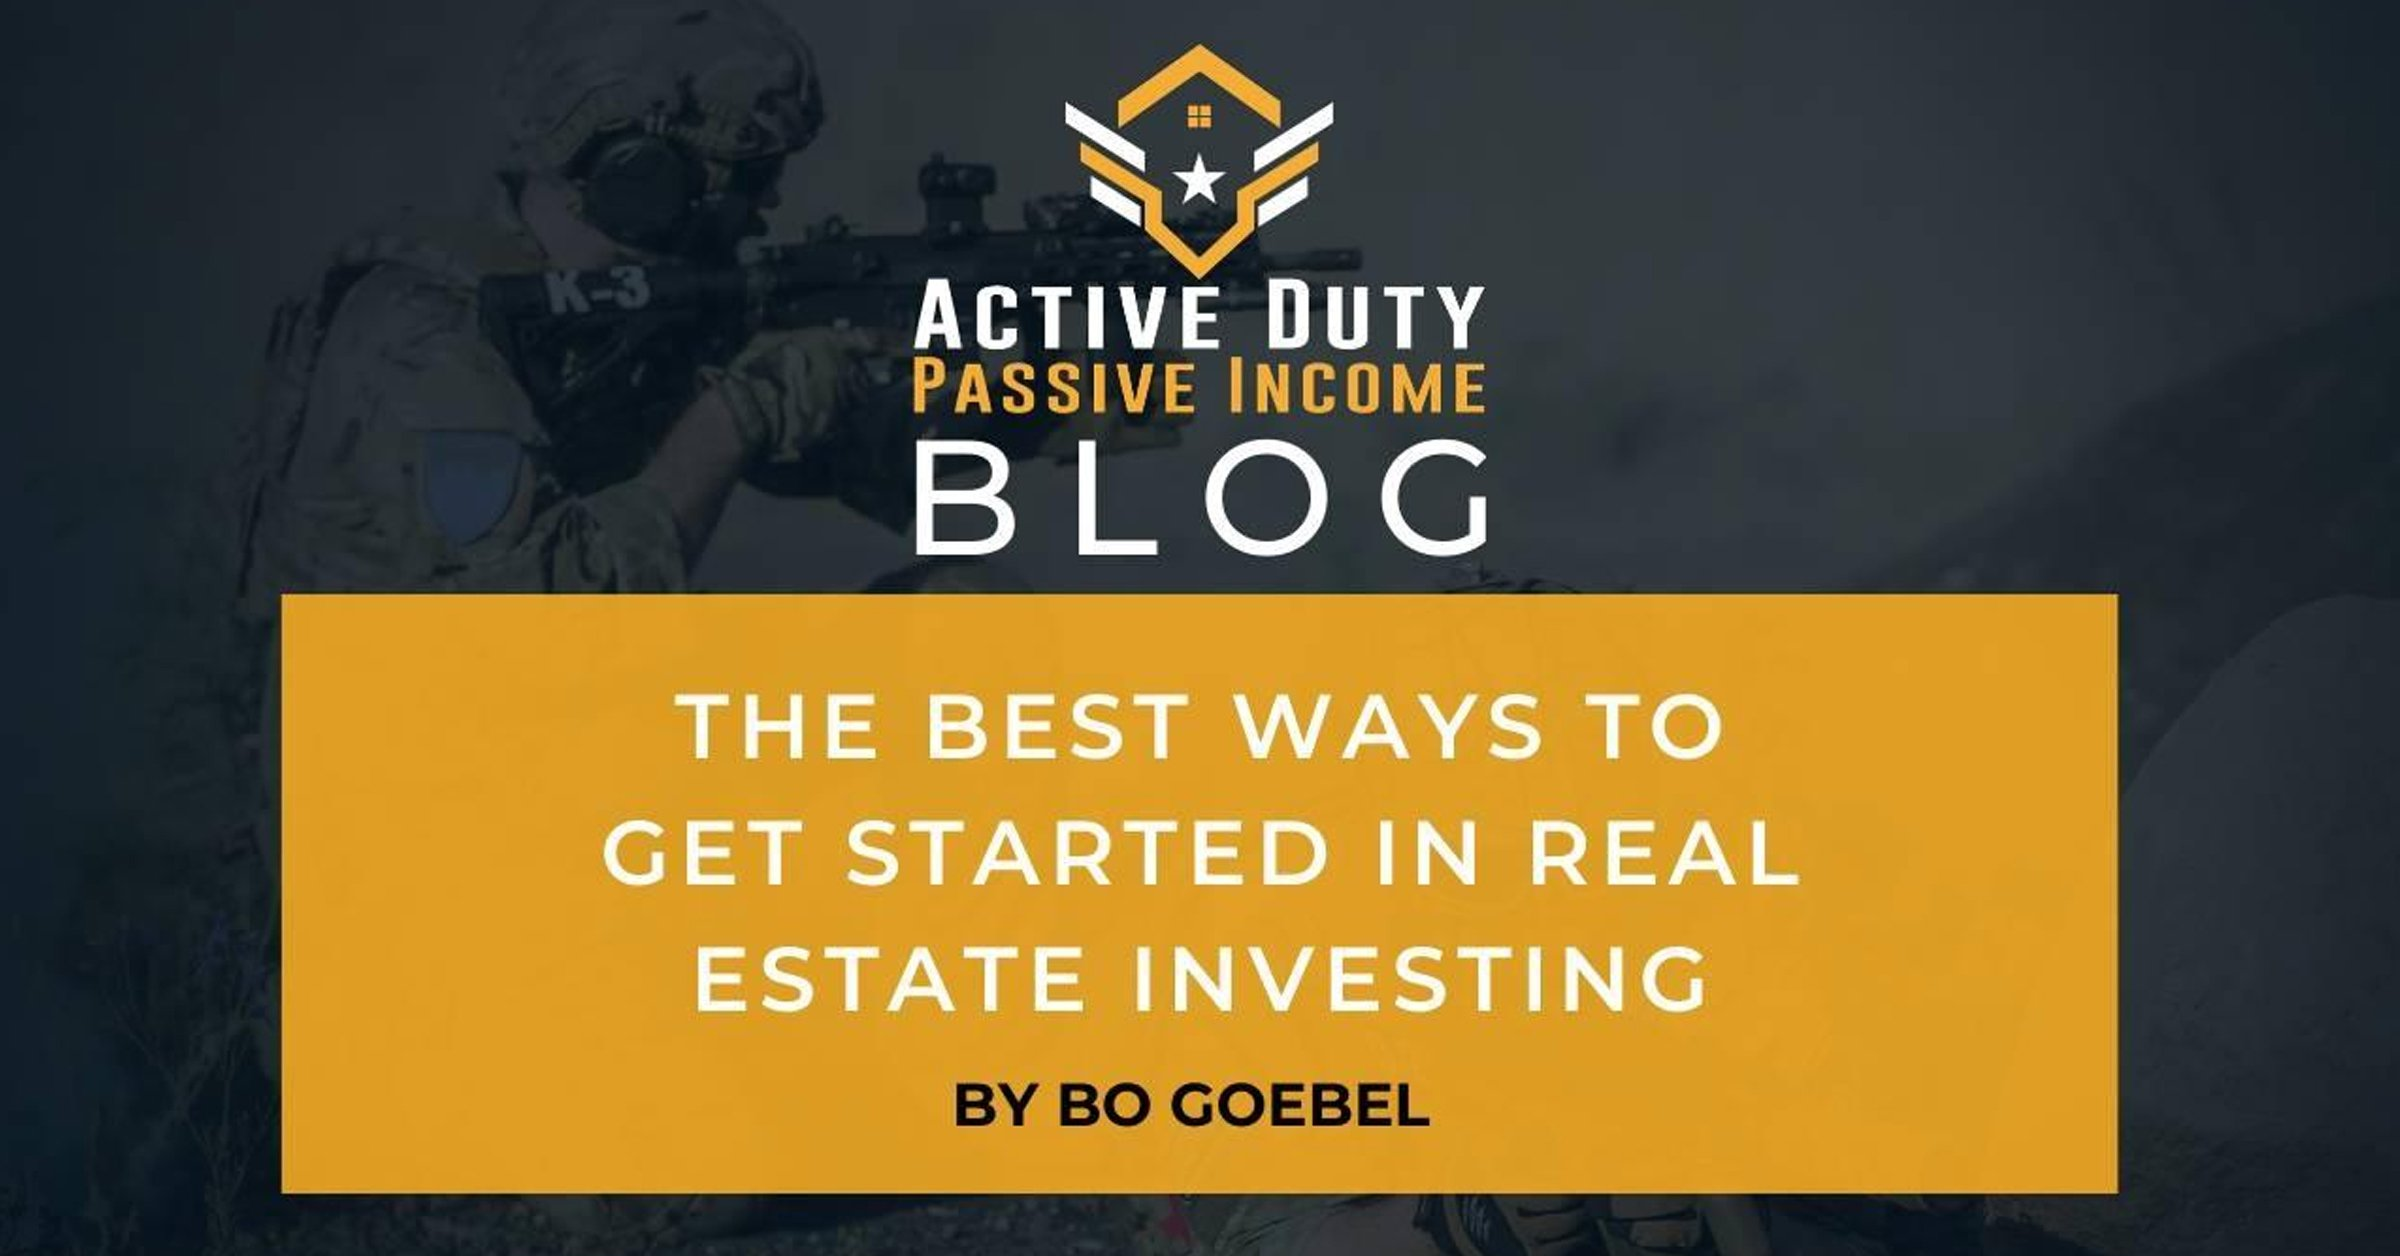 The Best Ways to Get Started in Real Estate Investing